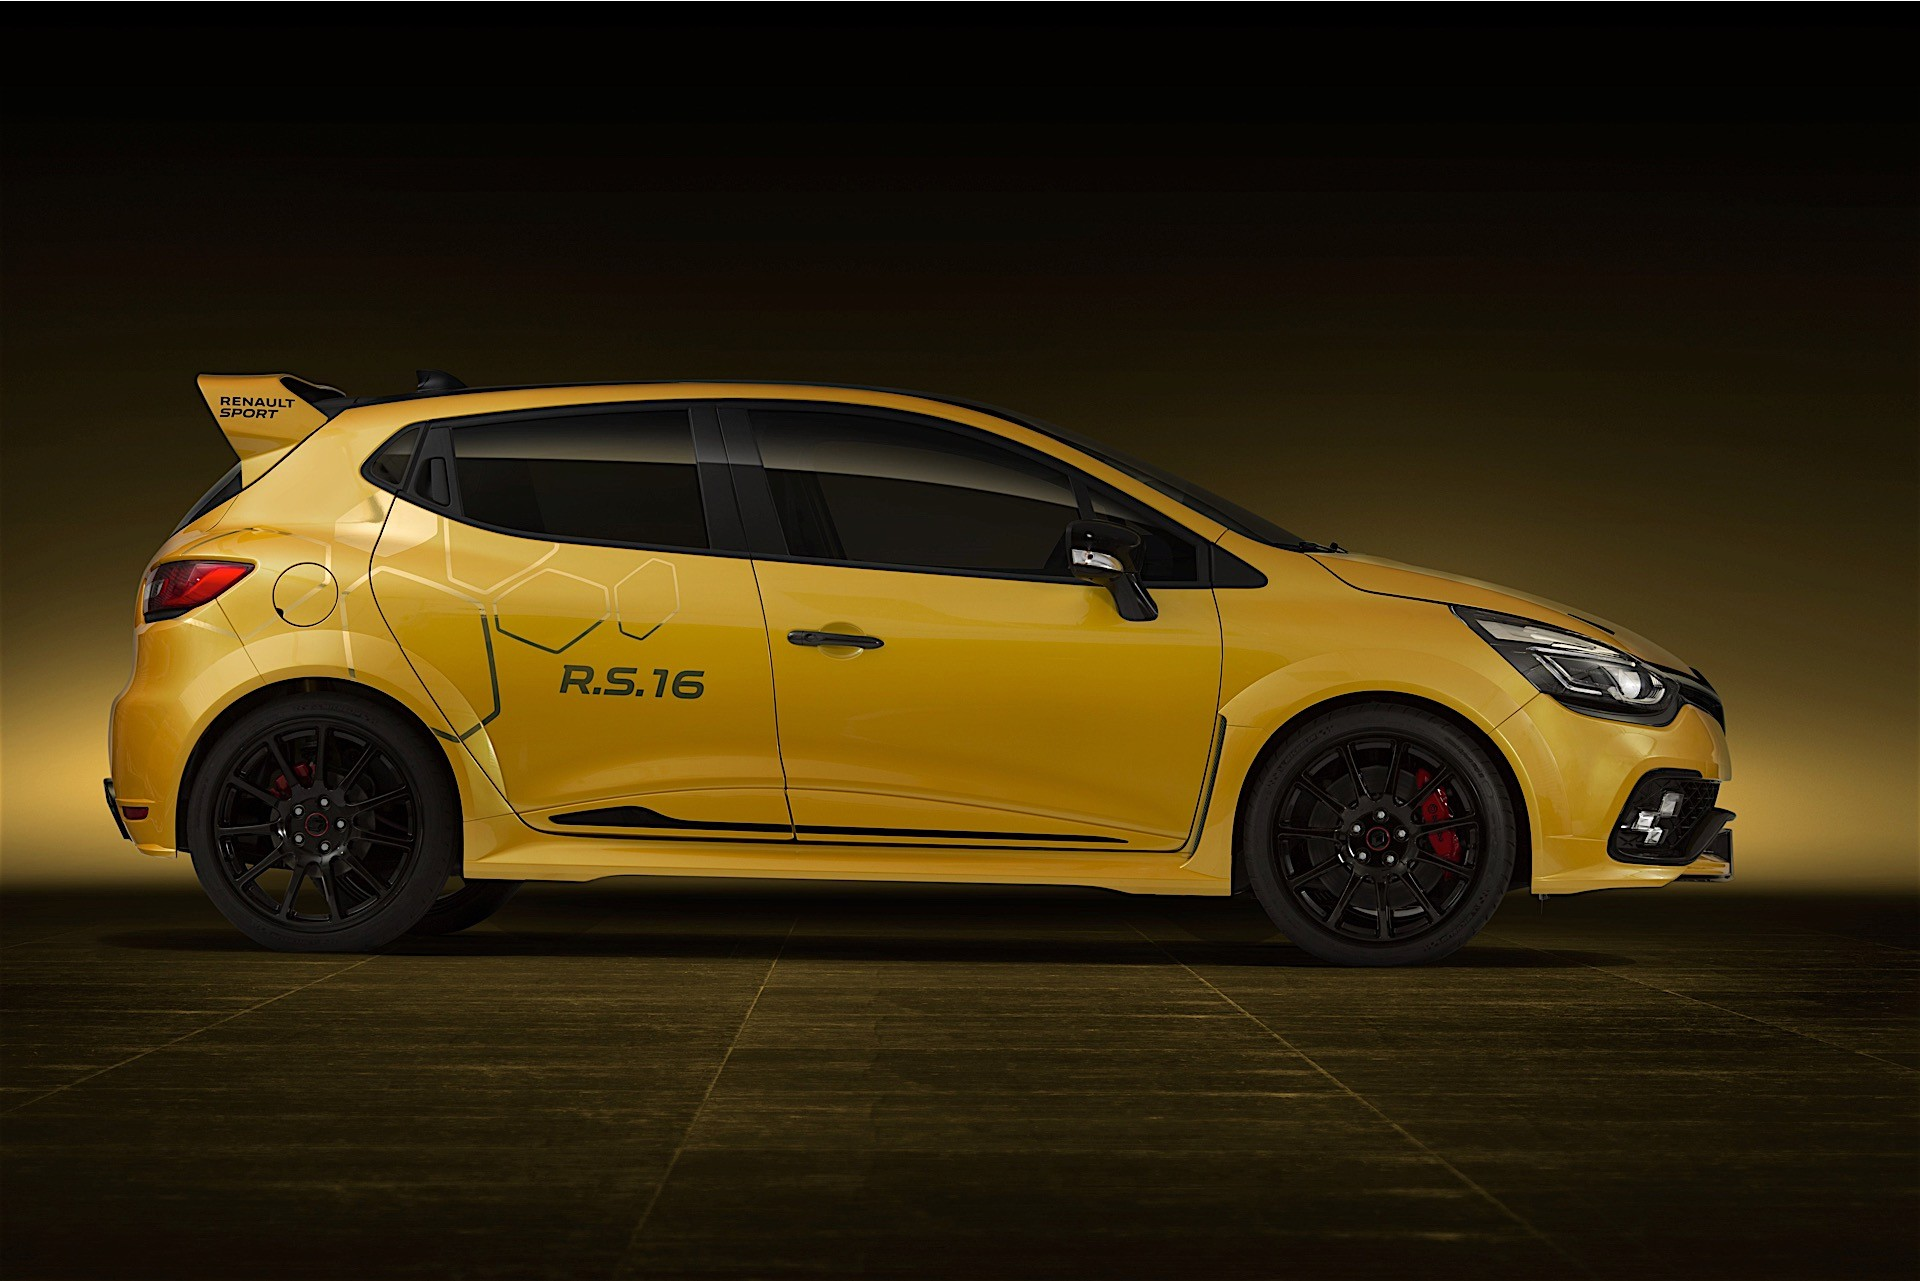 renault clio r s 16 concept gets megane 275 engine conversion performancedrive. Black Bedroom Furniture Sets. Home Design Ideas